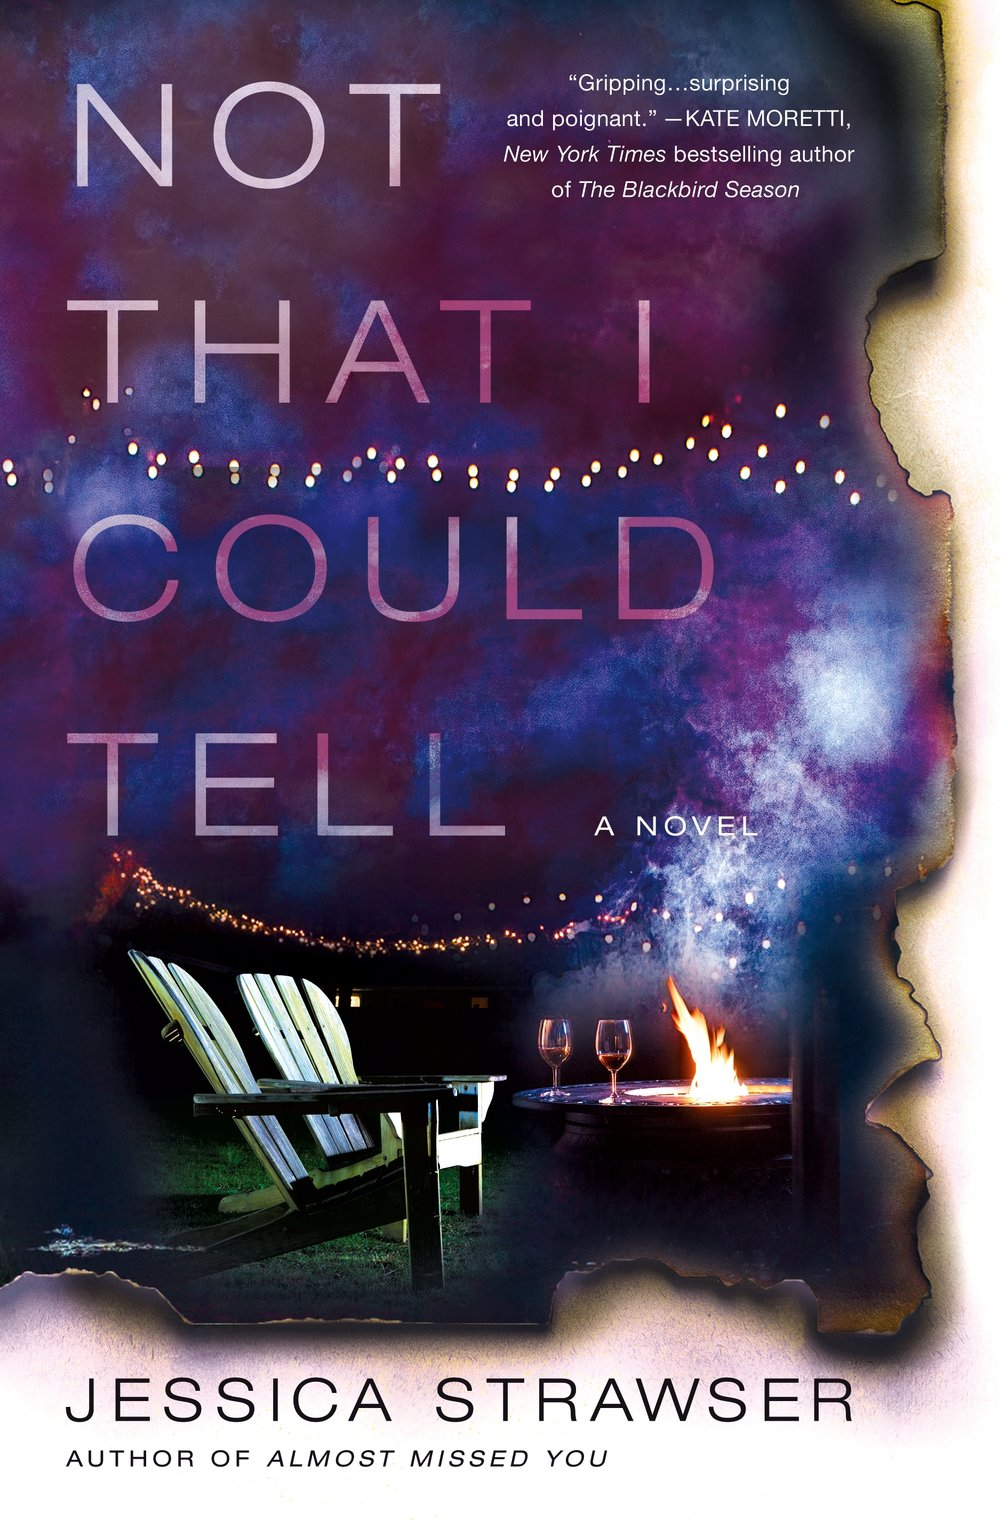 Not that I could tell by jessica strawser.jpeg